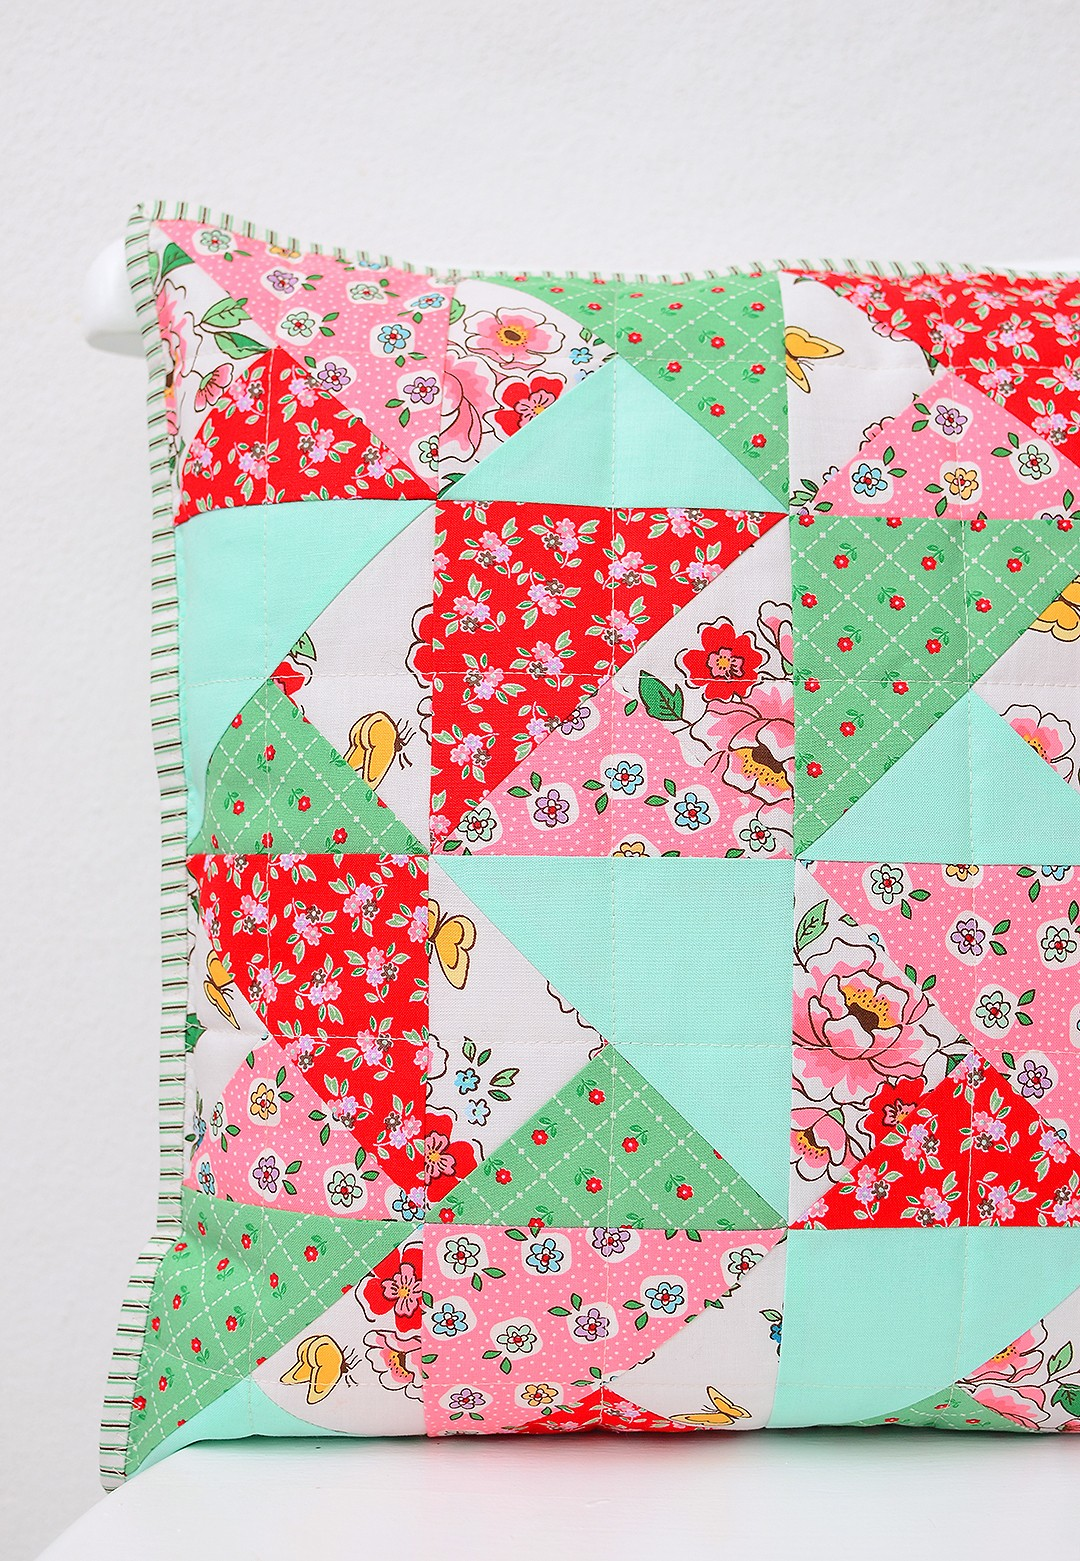 How to make a simple quilted pillow - a free quilt pattern and tutorial